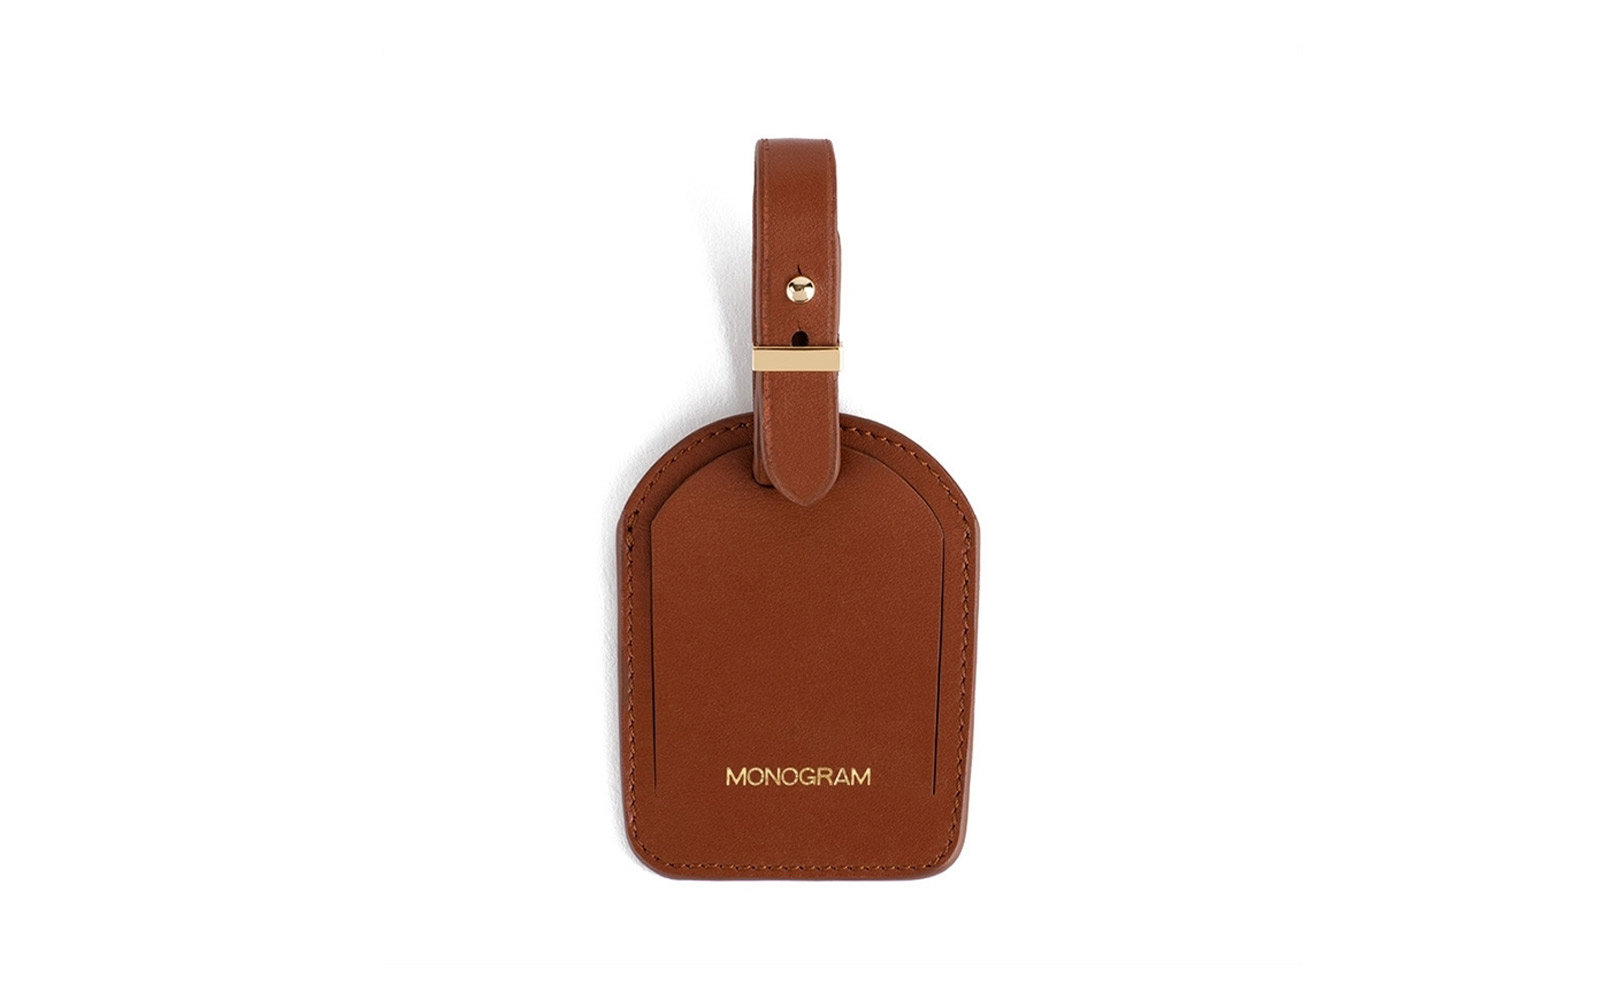 cuyana luggage tag